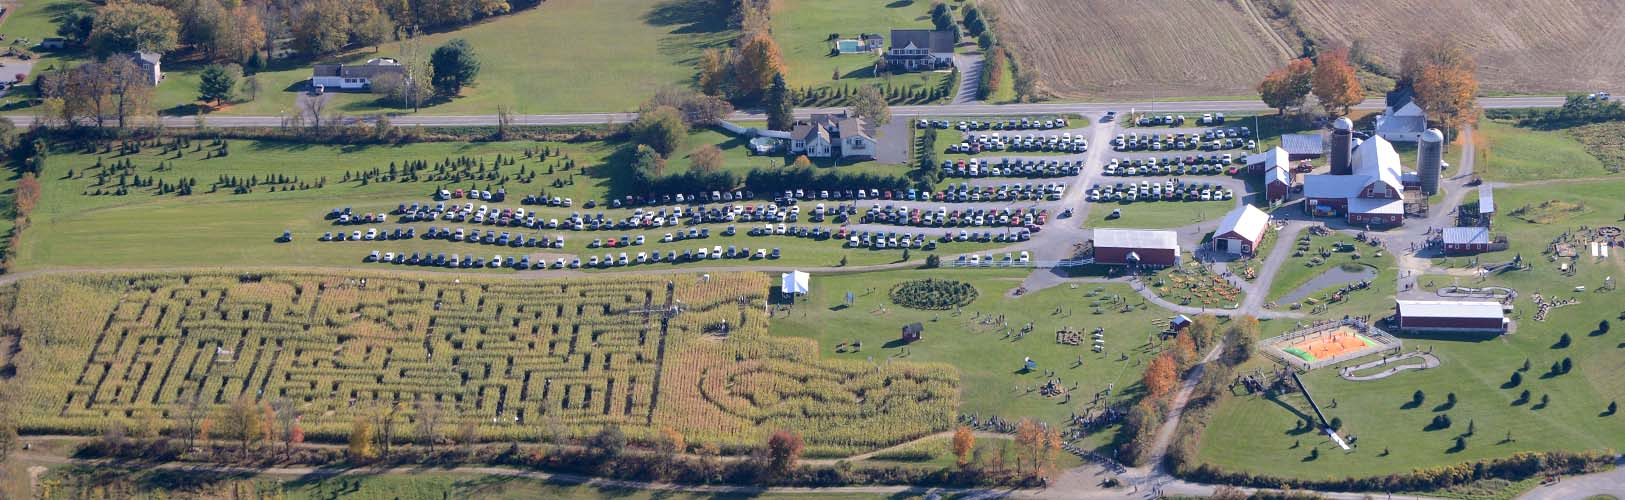 Overhead view of Ellms Family Farm and Corn Maze